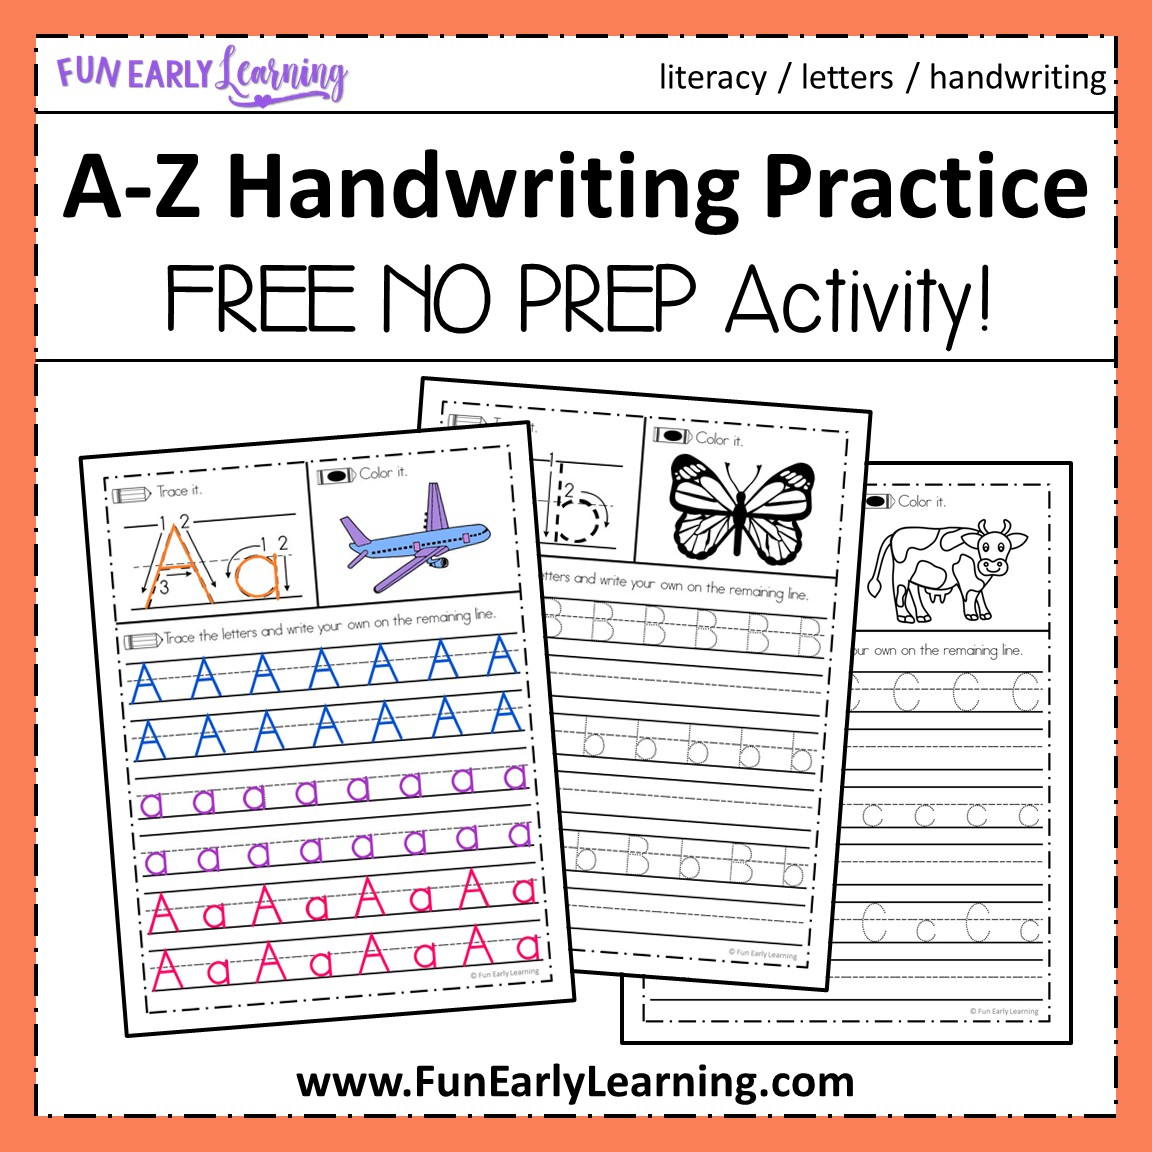 A-Z Handwriting Practice No Prep Worksheets For Learning Letters throughout Alphabet Handwriting Worksheets A To Z Free Printables